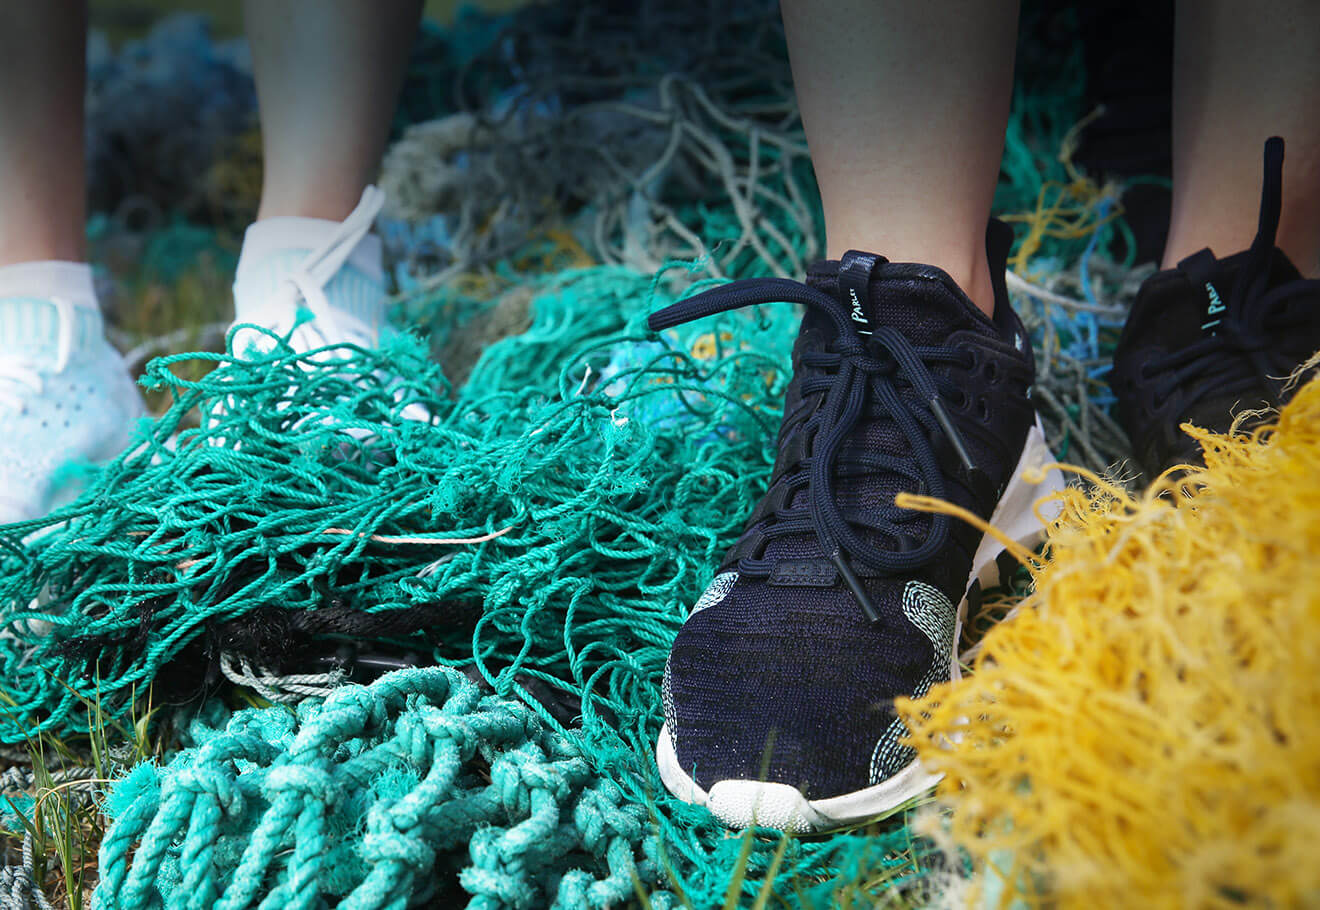 Make products out of ocean plastic